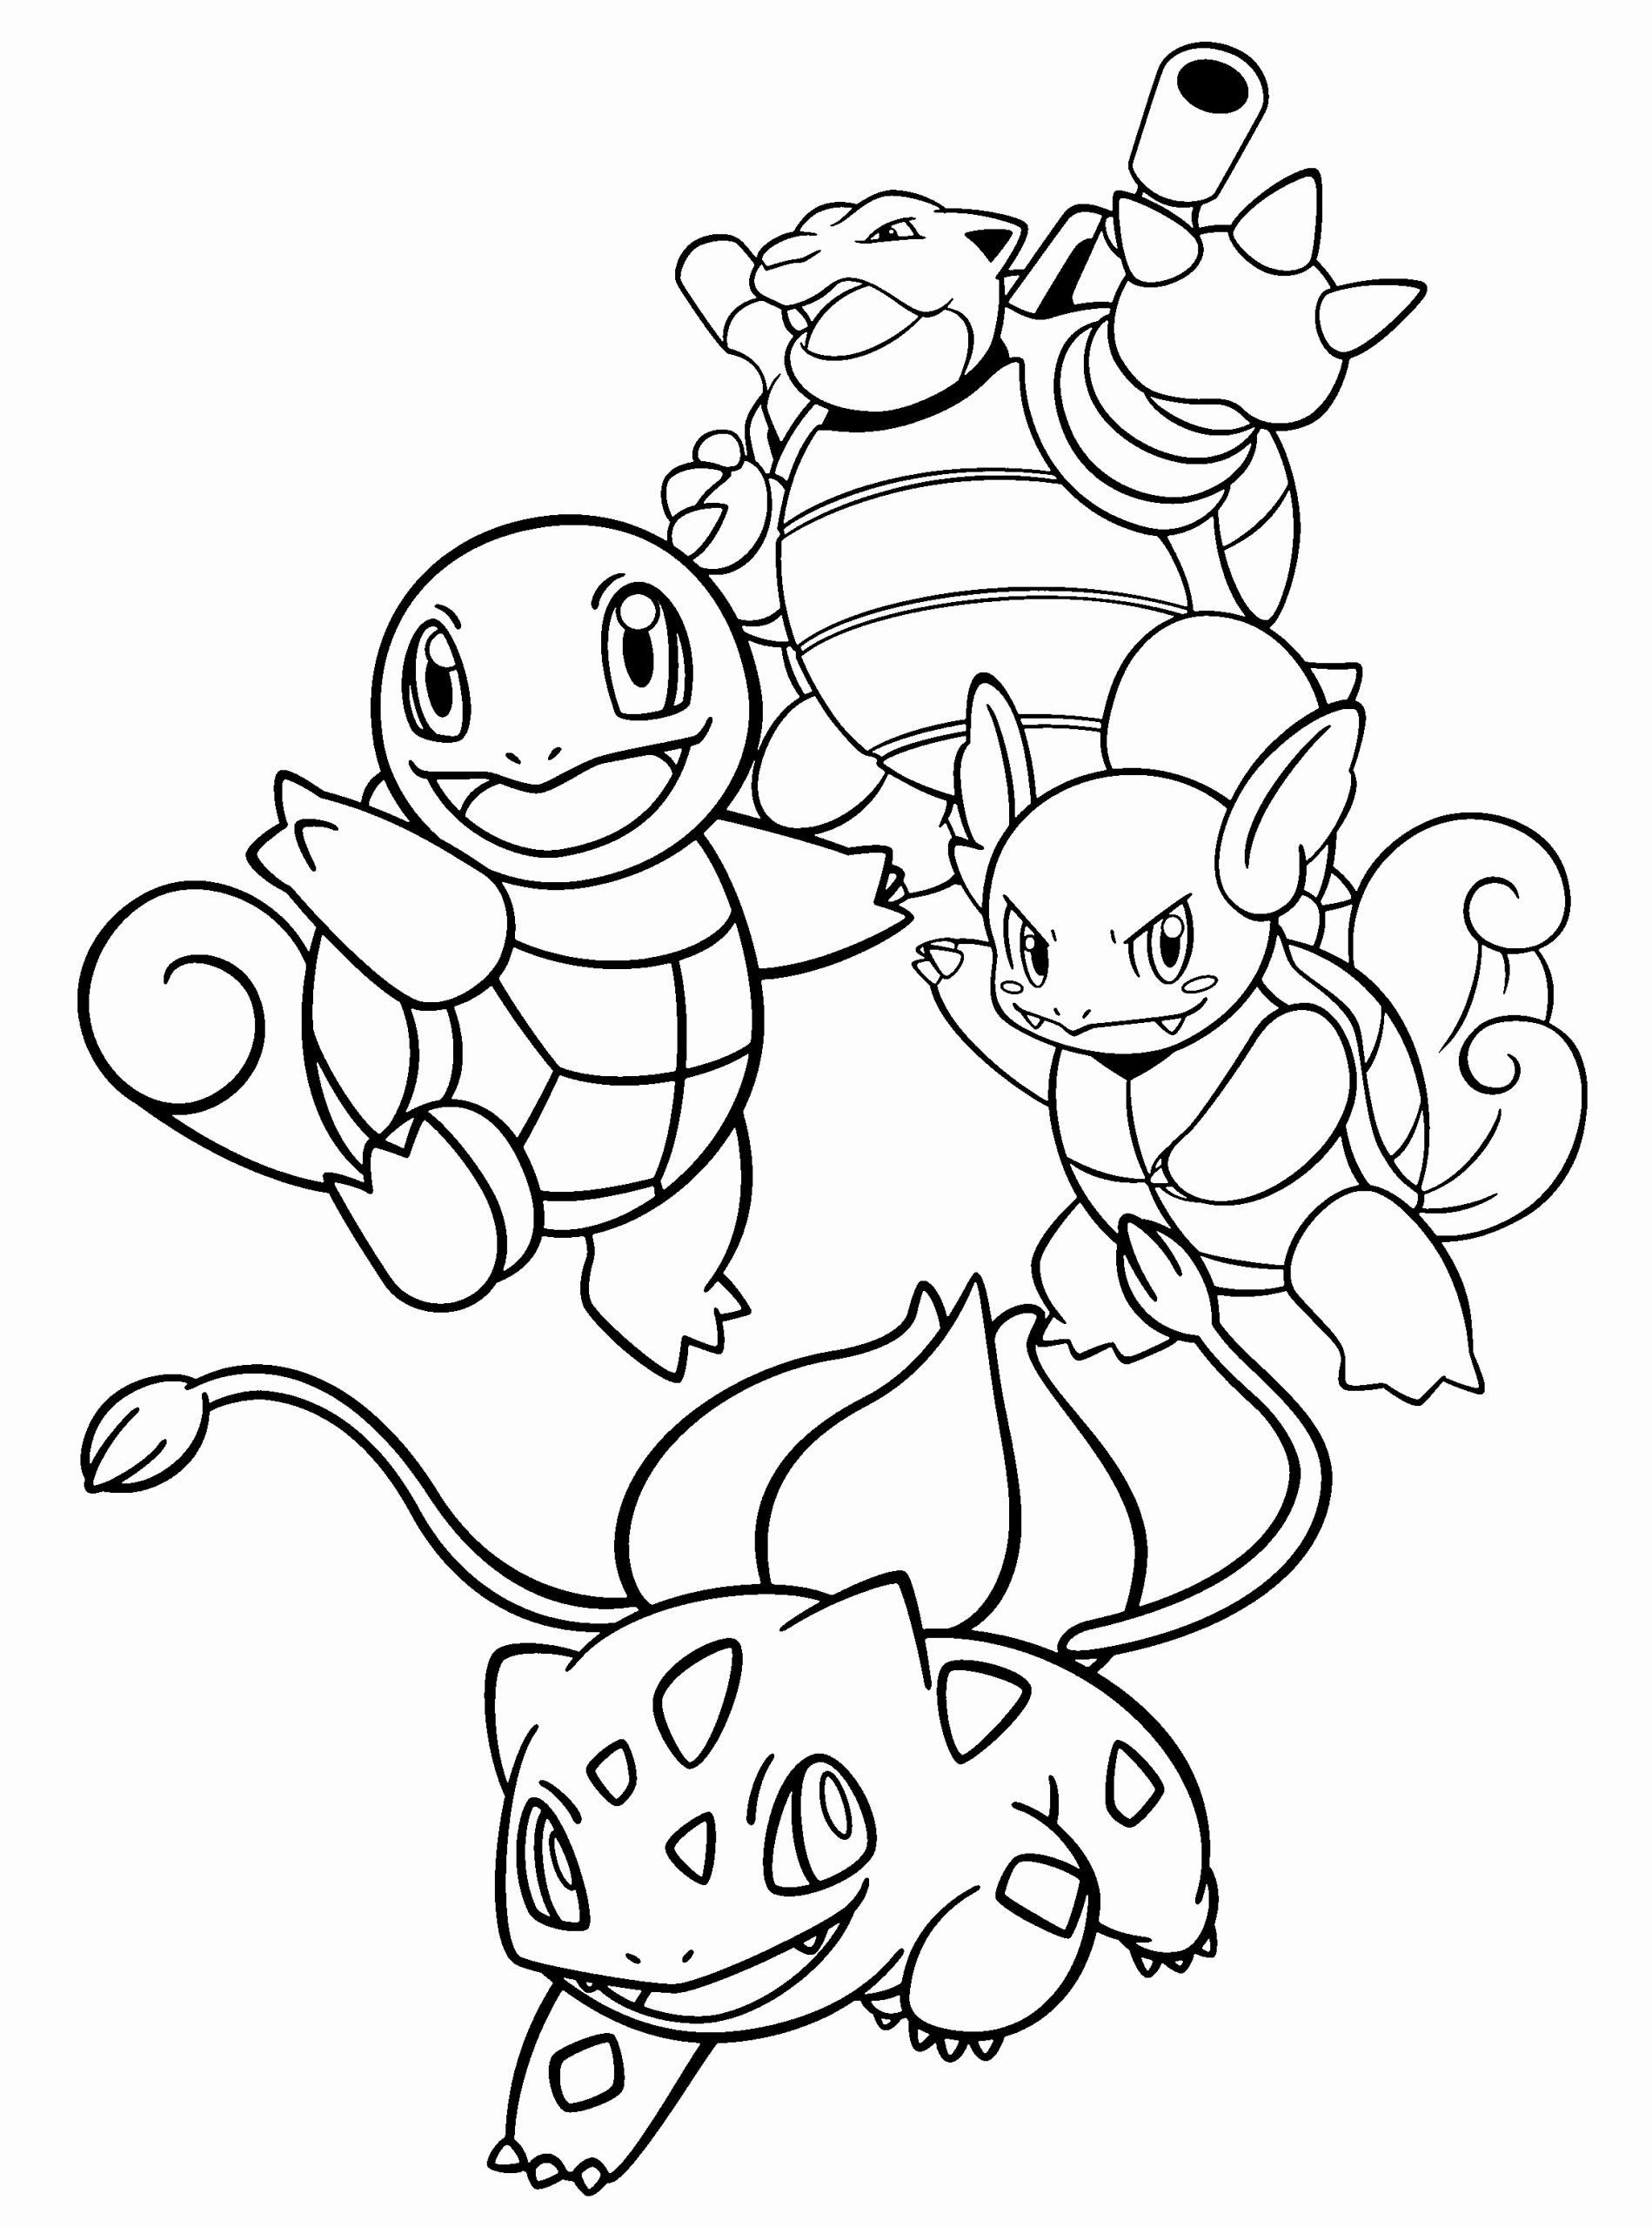 Squirtle Pokemon Coloring Page Luxury New Pokemon Squirtle Coloring Pages Pulpenku Pulpenku In 2020 Pokemon Coloring Pages Pokemon Coloring Pokemon Coloring Sheets